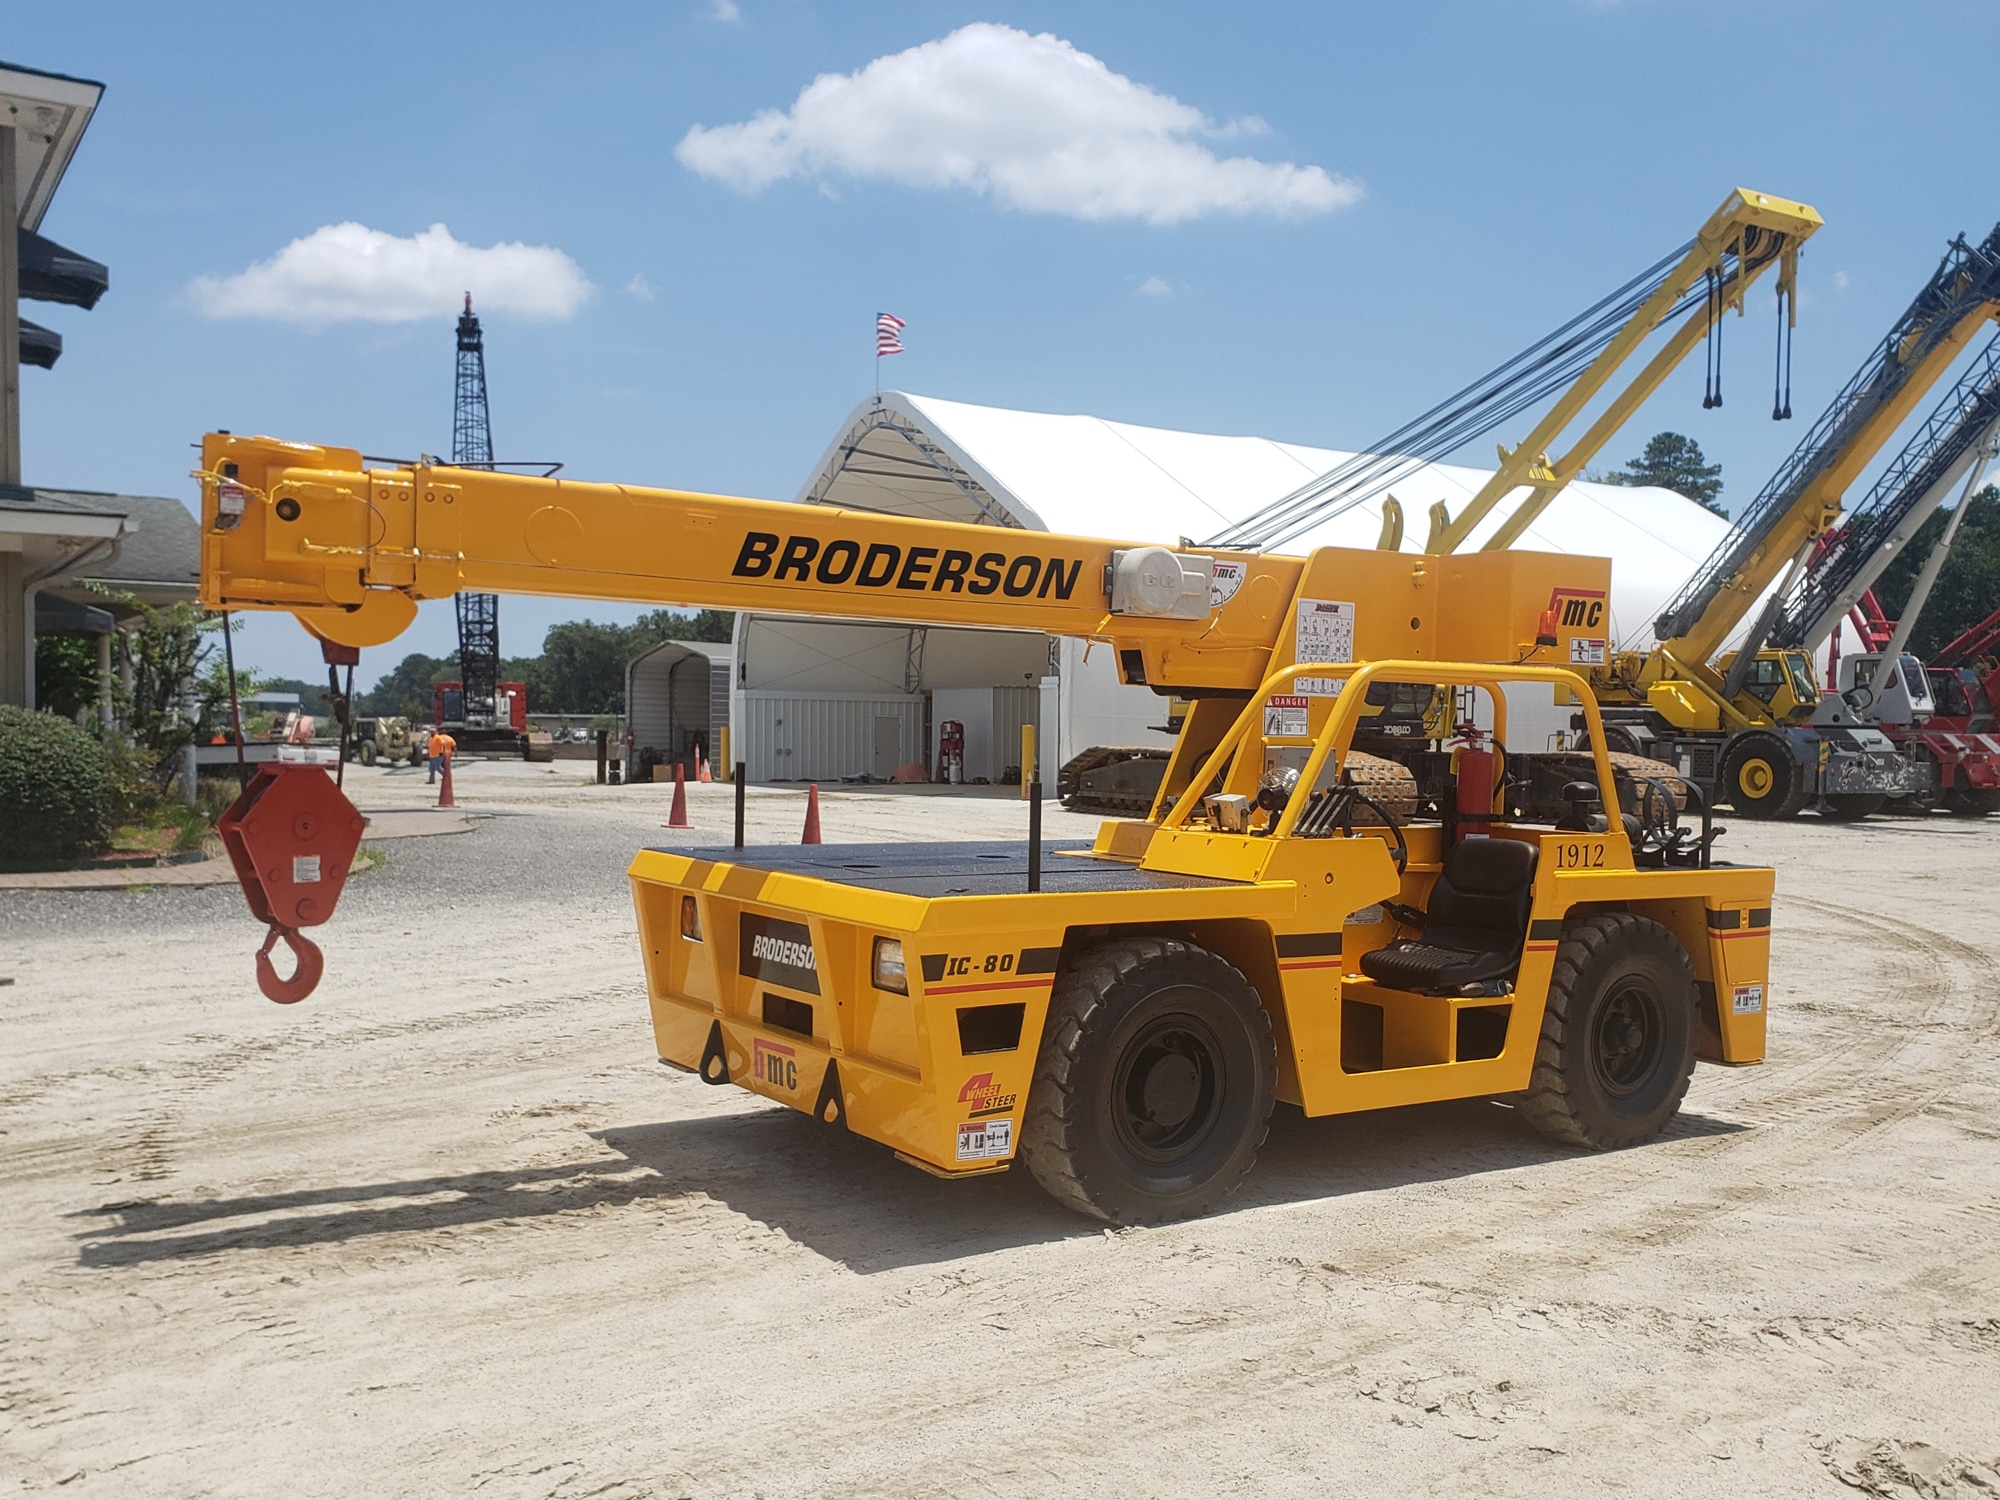 2010 BRODERSON IC-80-3G #1912 Image